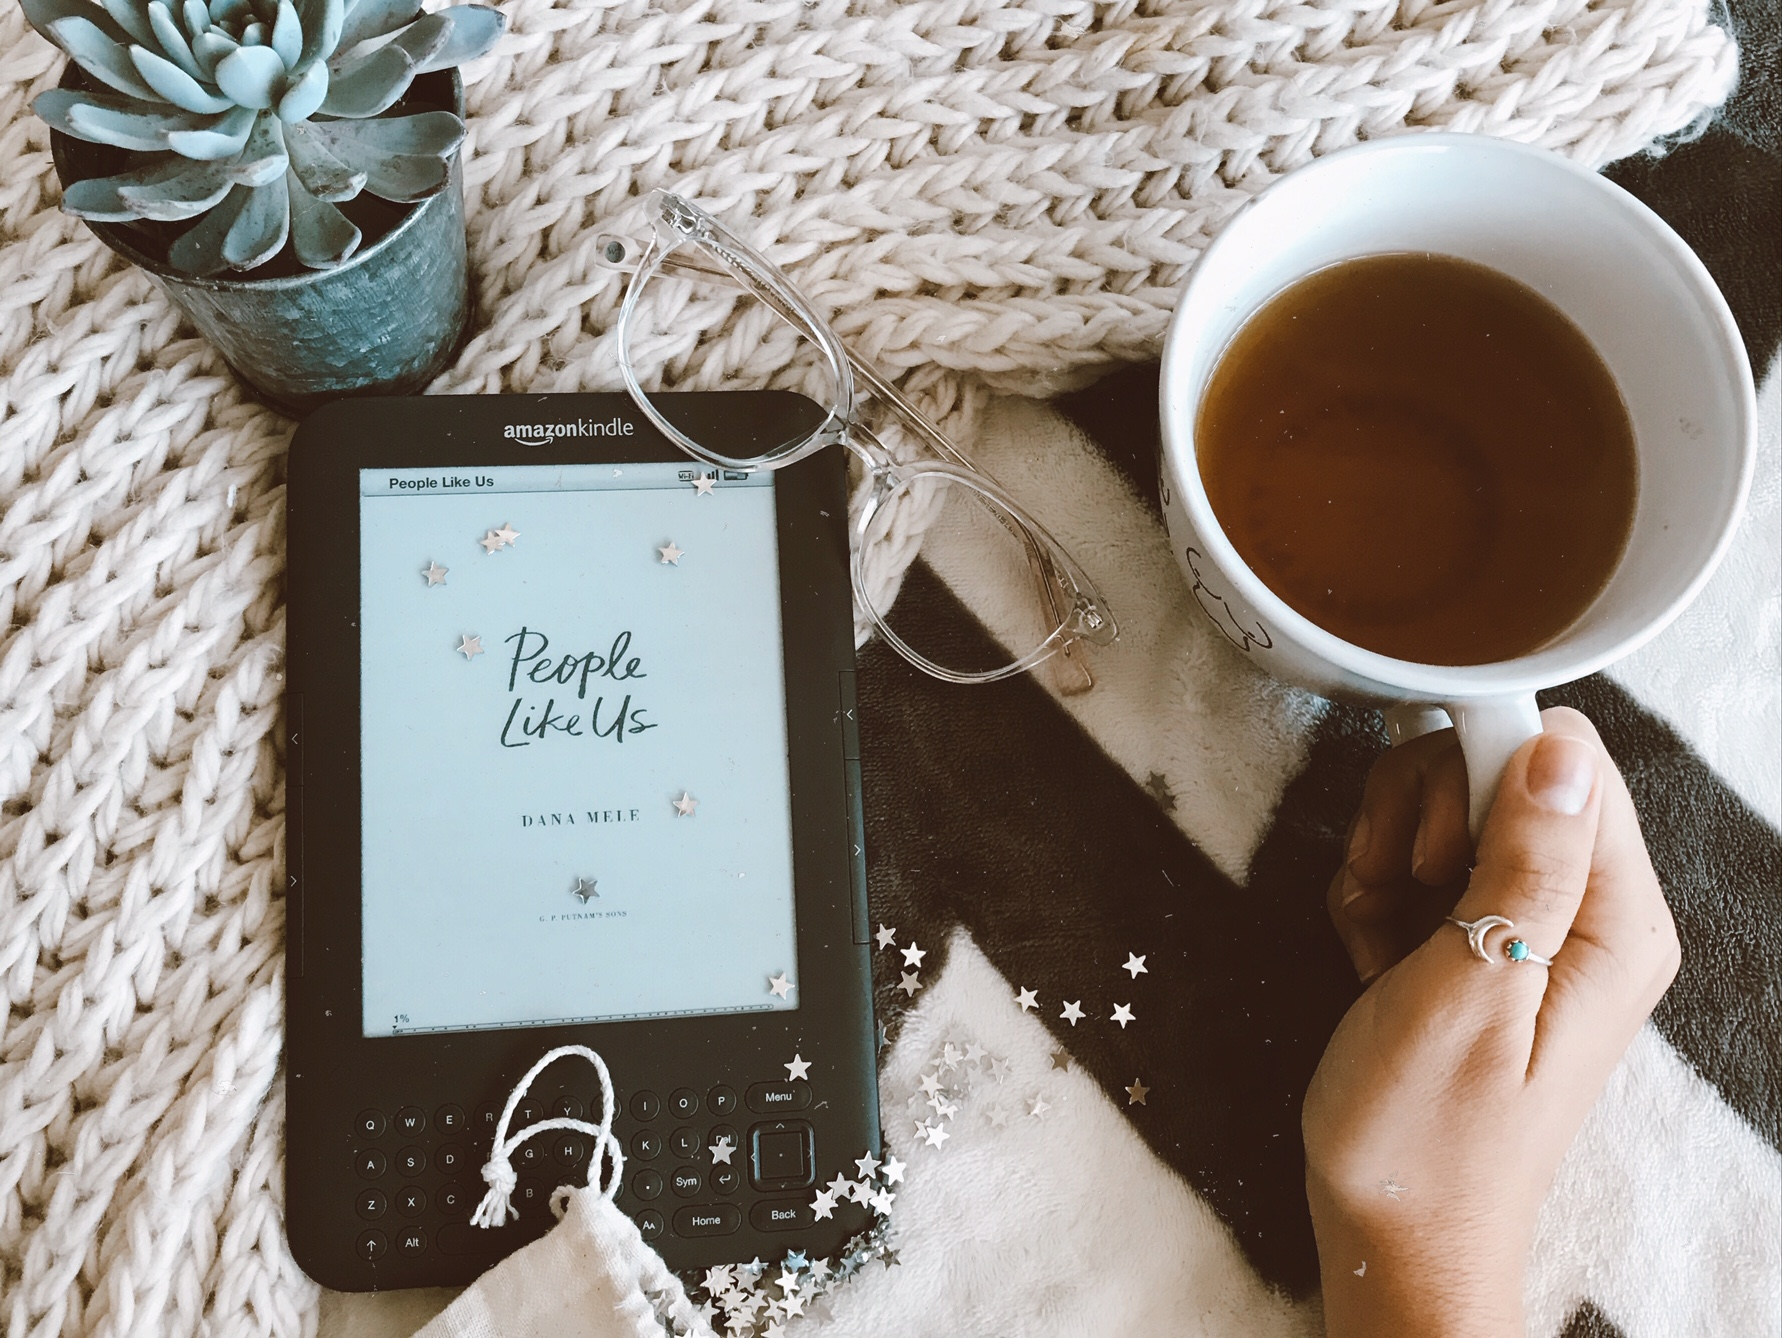 A review of  People Like Us  by Dana Mele